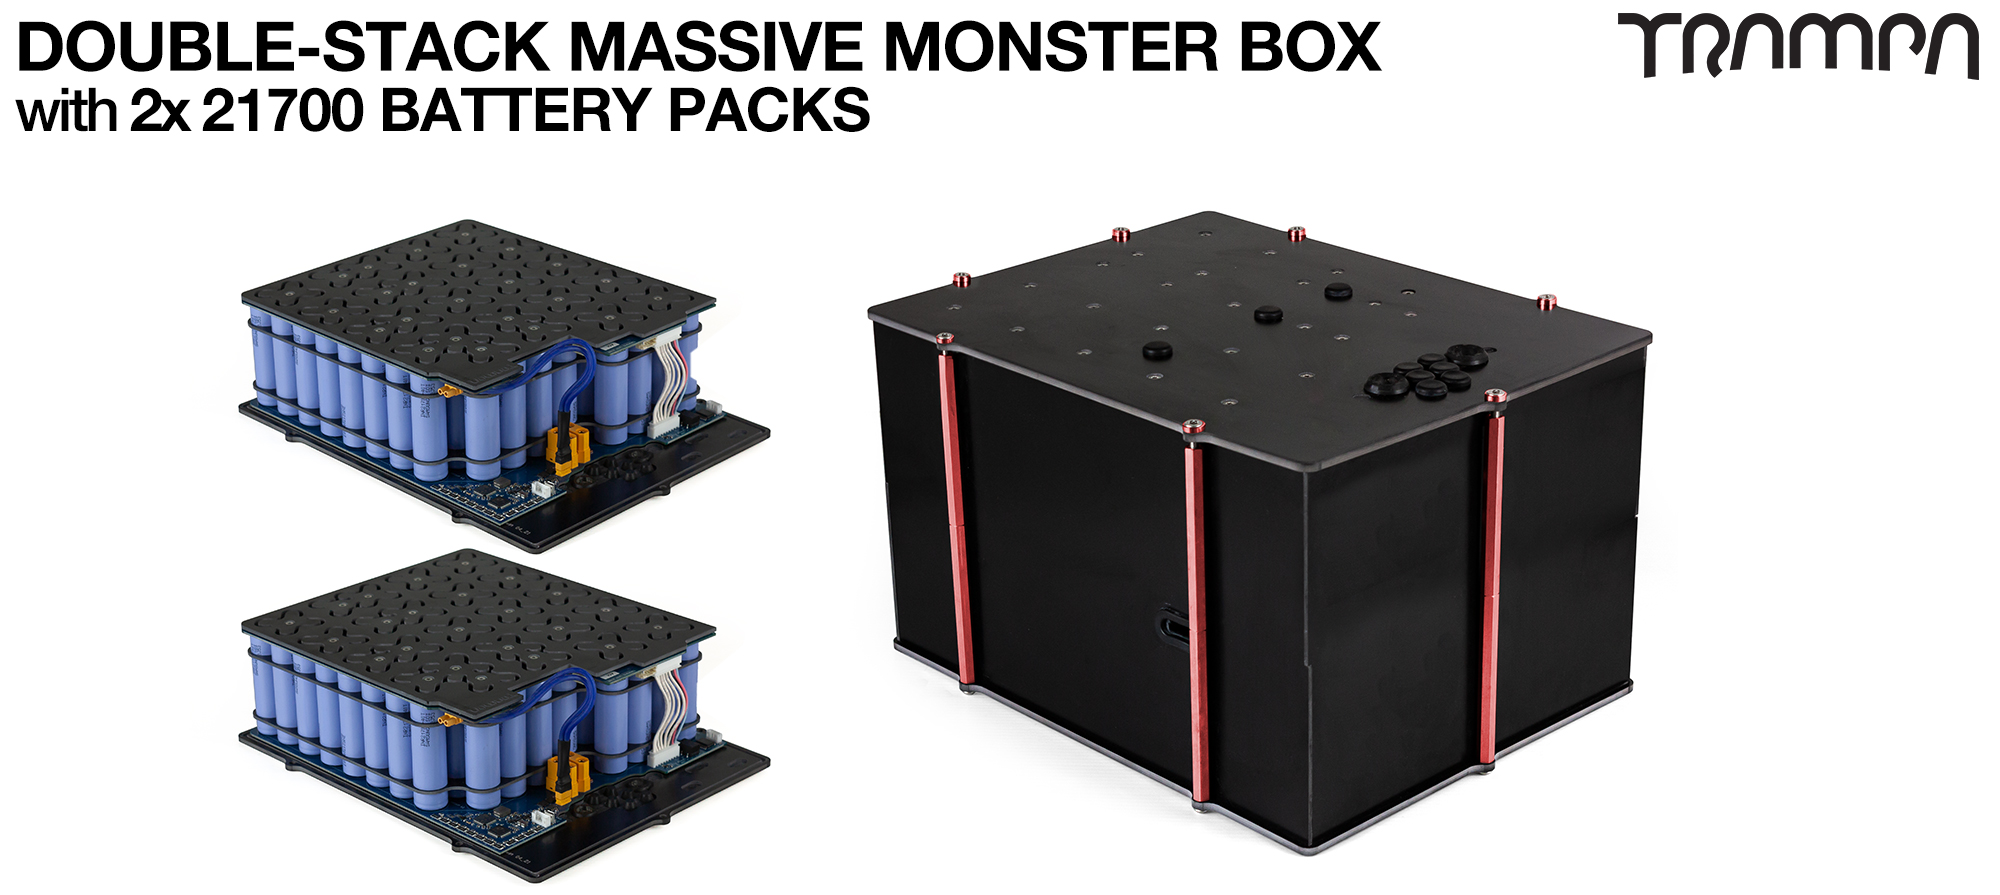 1WD DOUBLE STACK MASSIVE MONSTER Box with 21700 PCB Pack with 168x 21700 cells 12s7p 70Ah NO VESC - UK Customers only